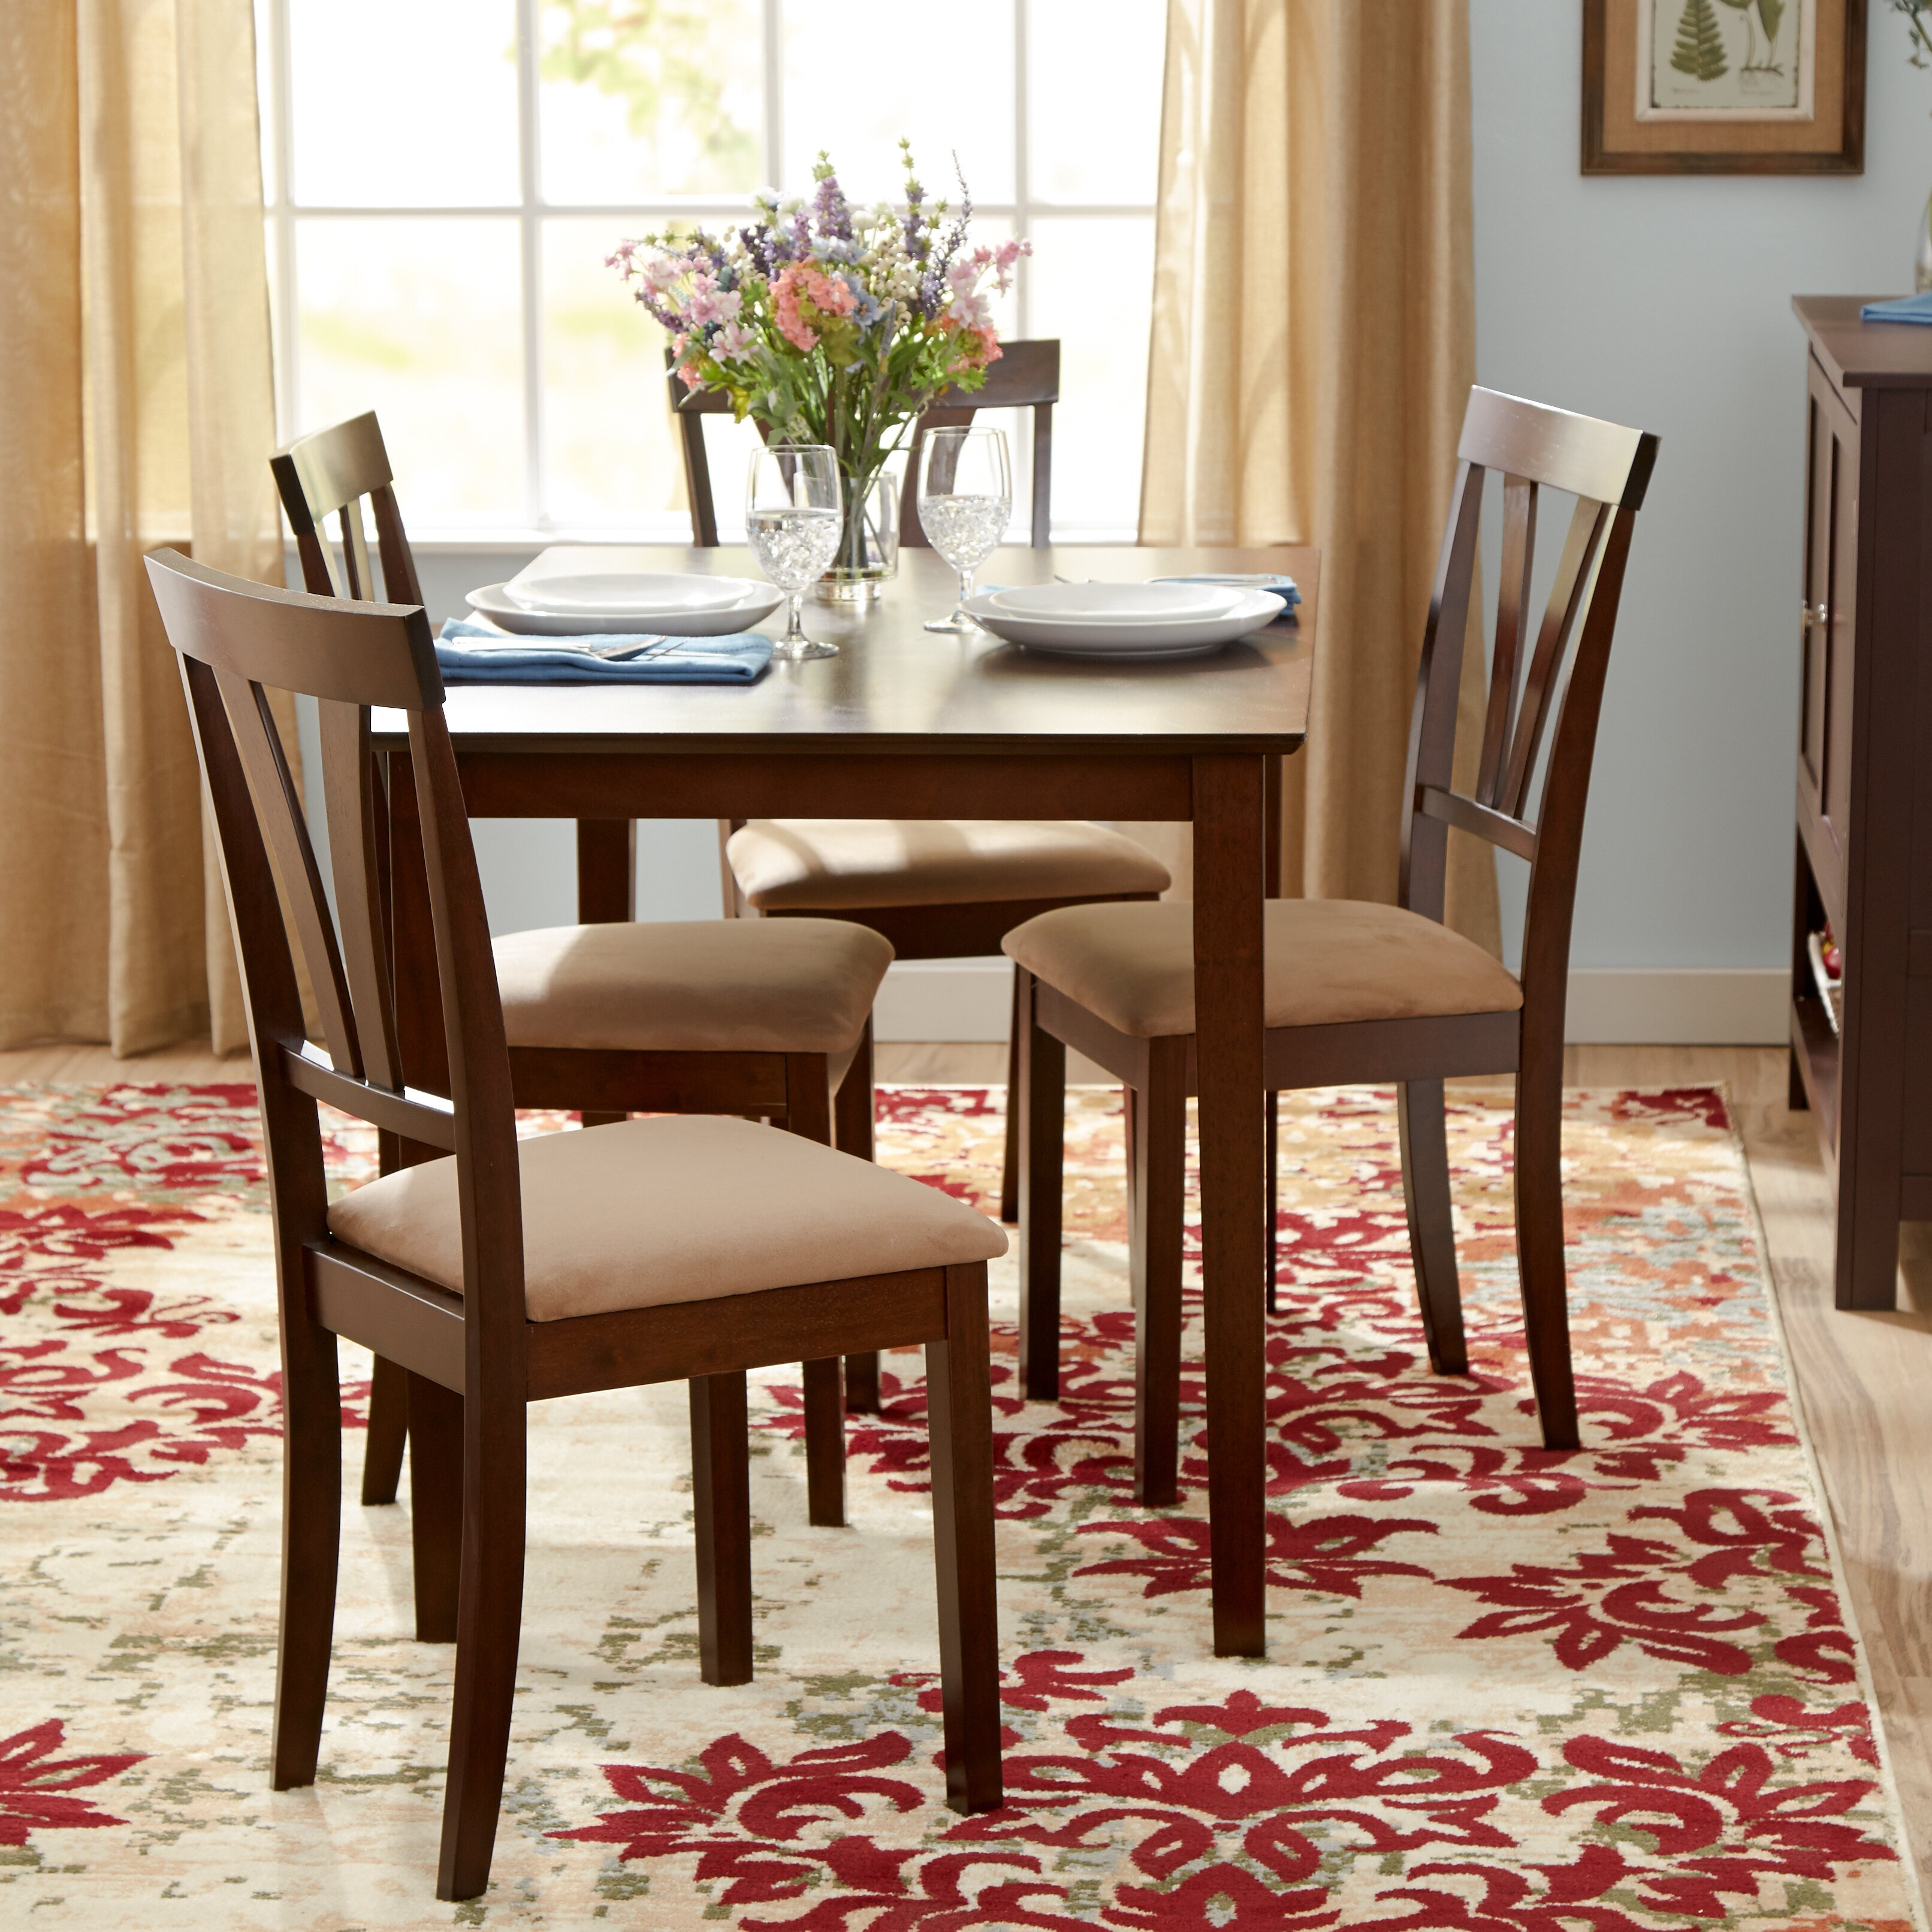 Dining Room Sets: Andover Mills Donald 5 Piece Dining Set & Reviews